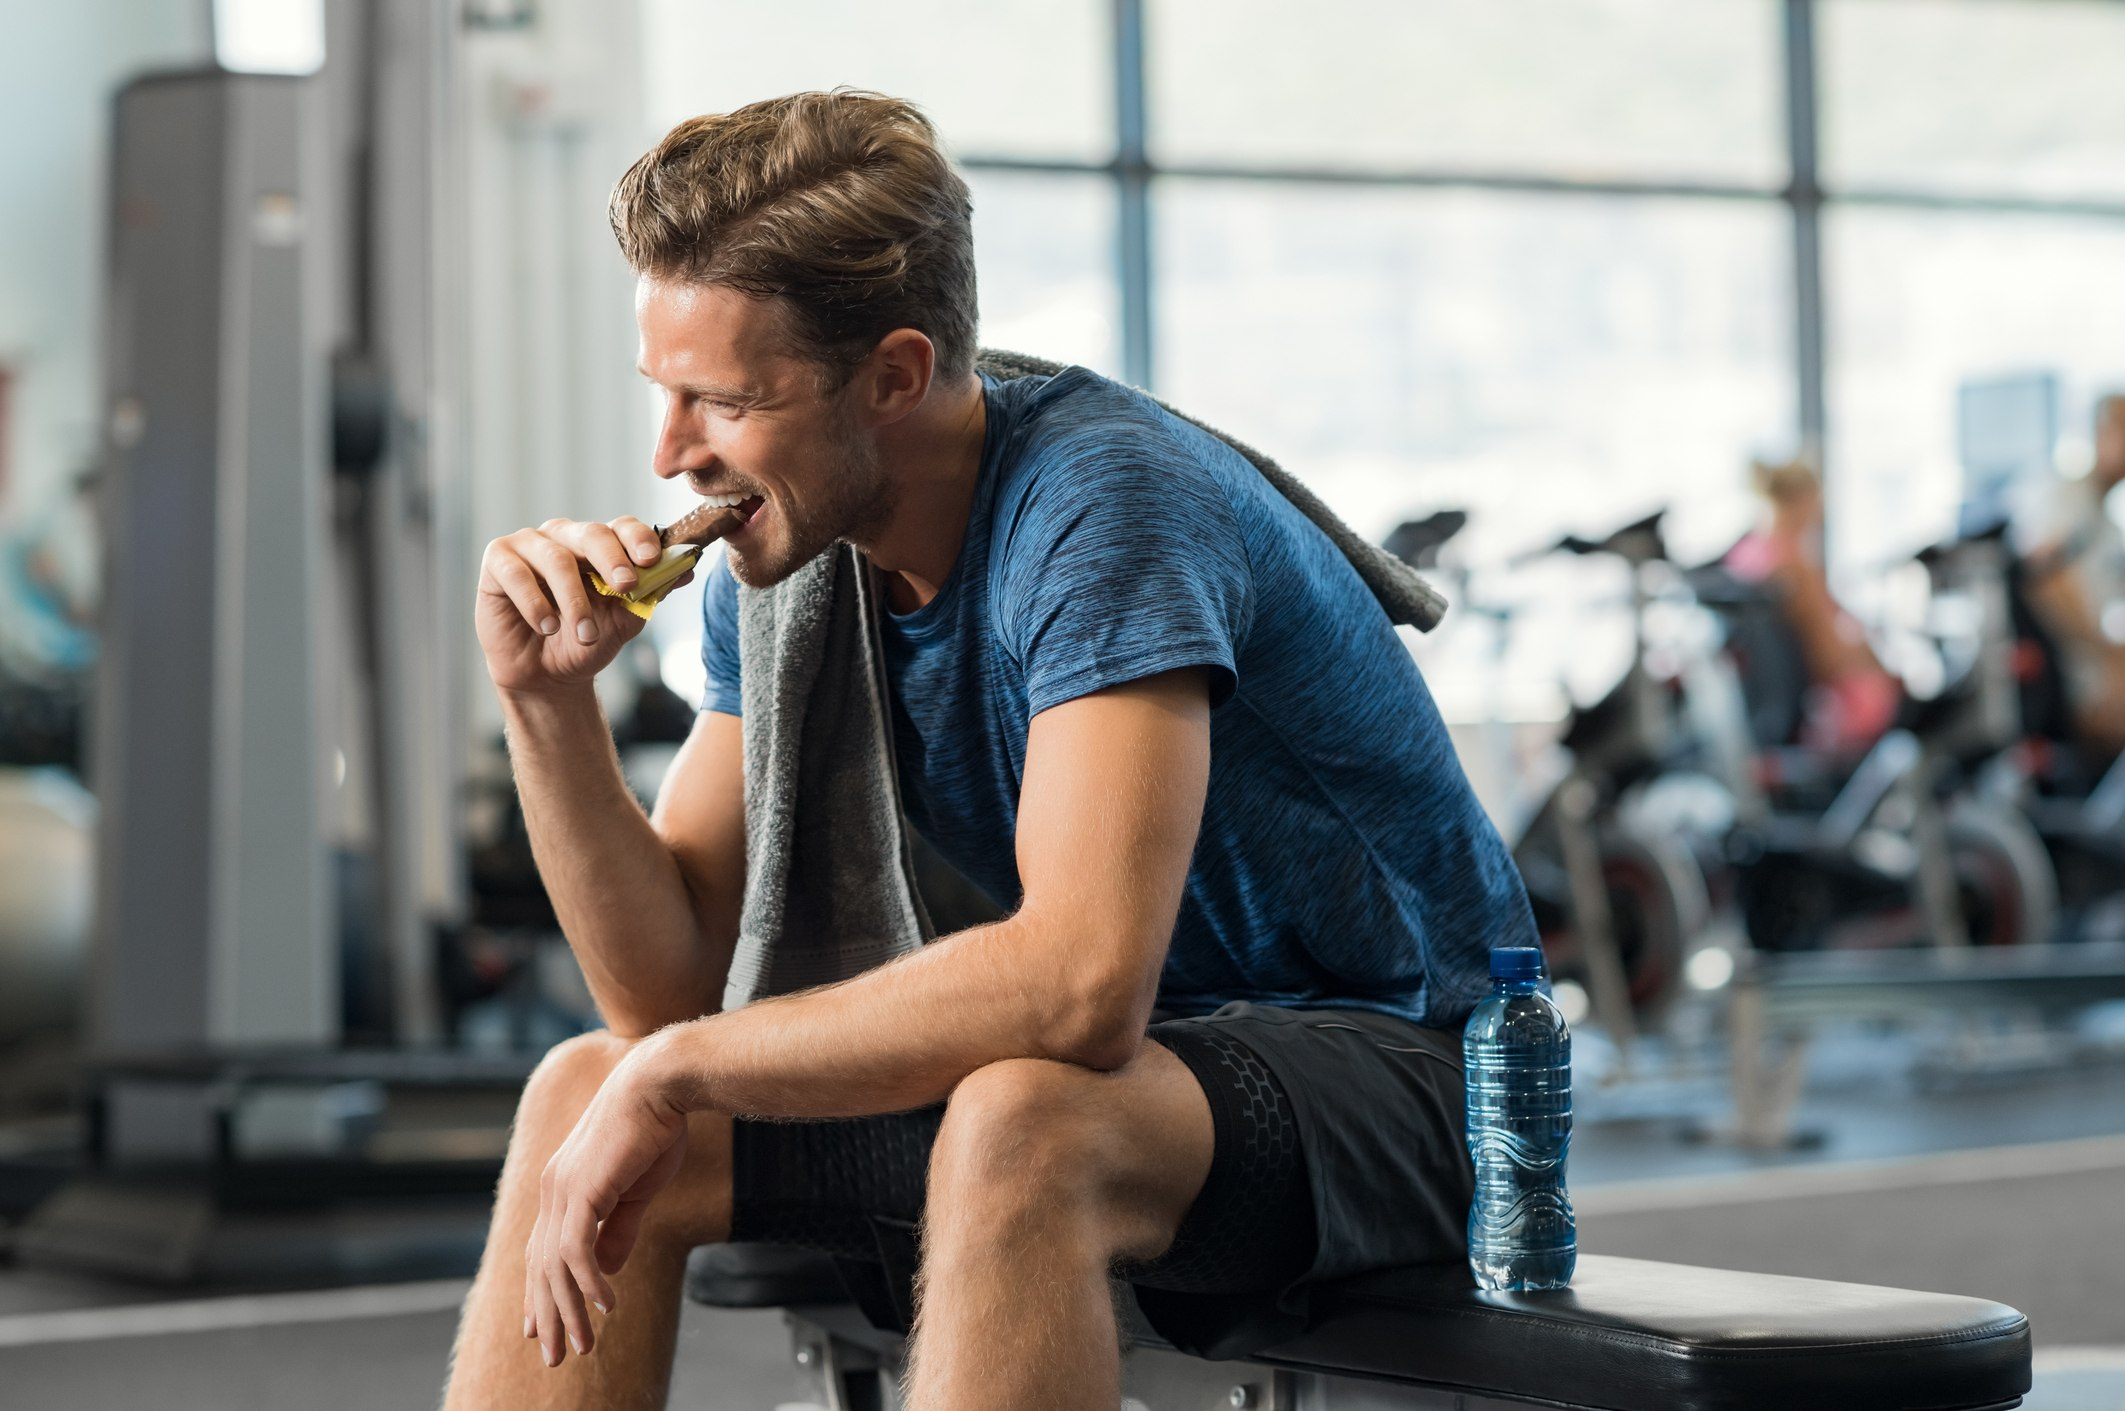 Sweaty young man eating energy bar at gym